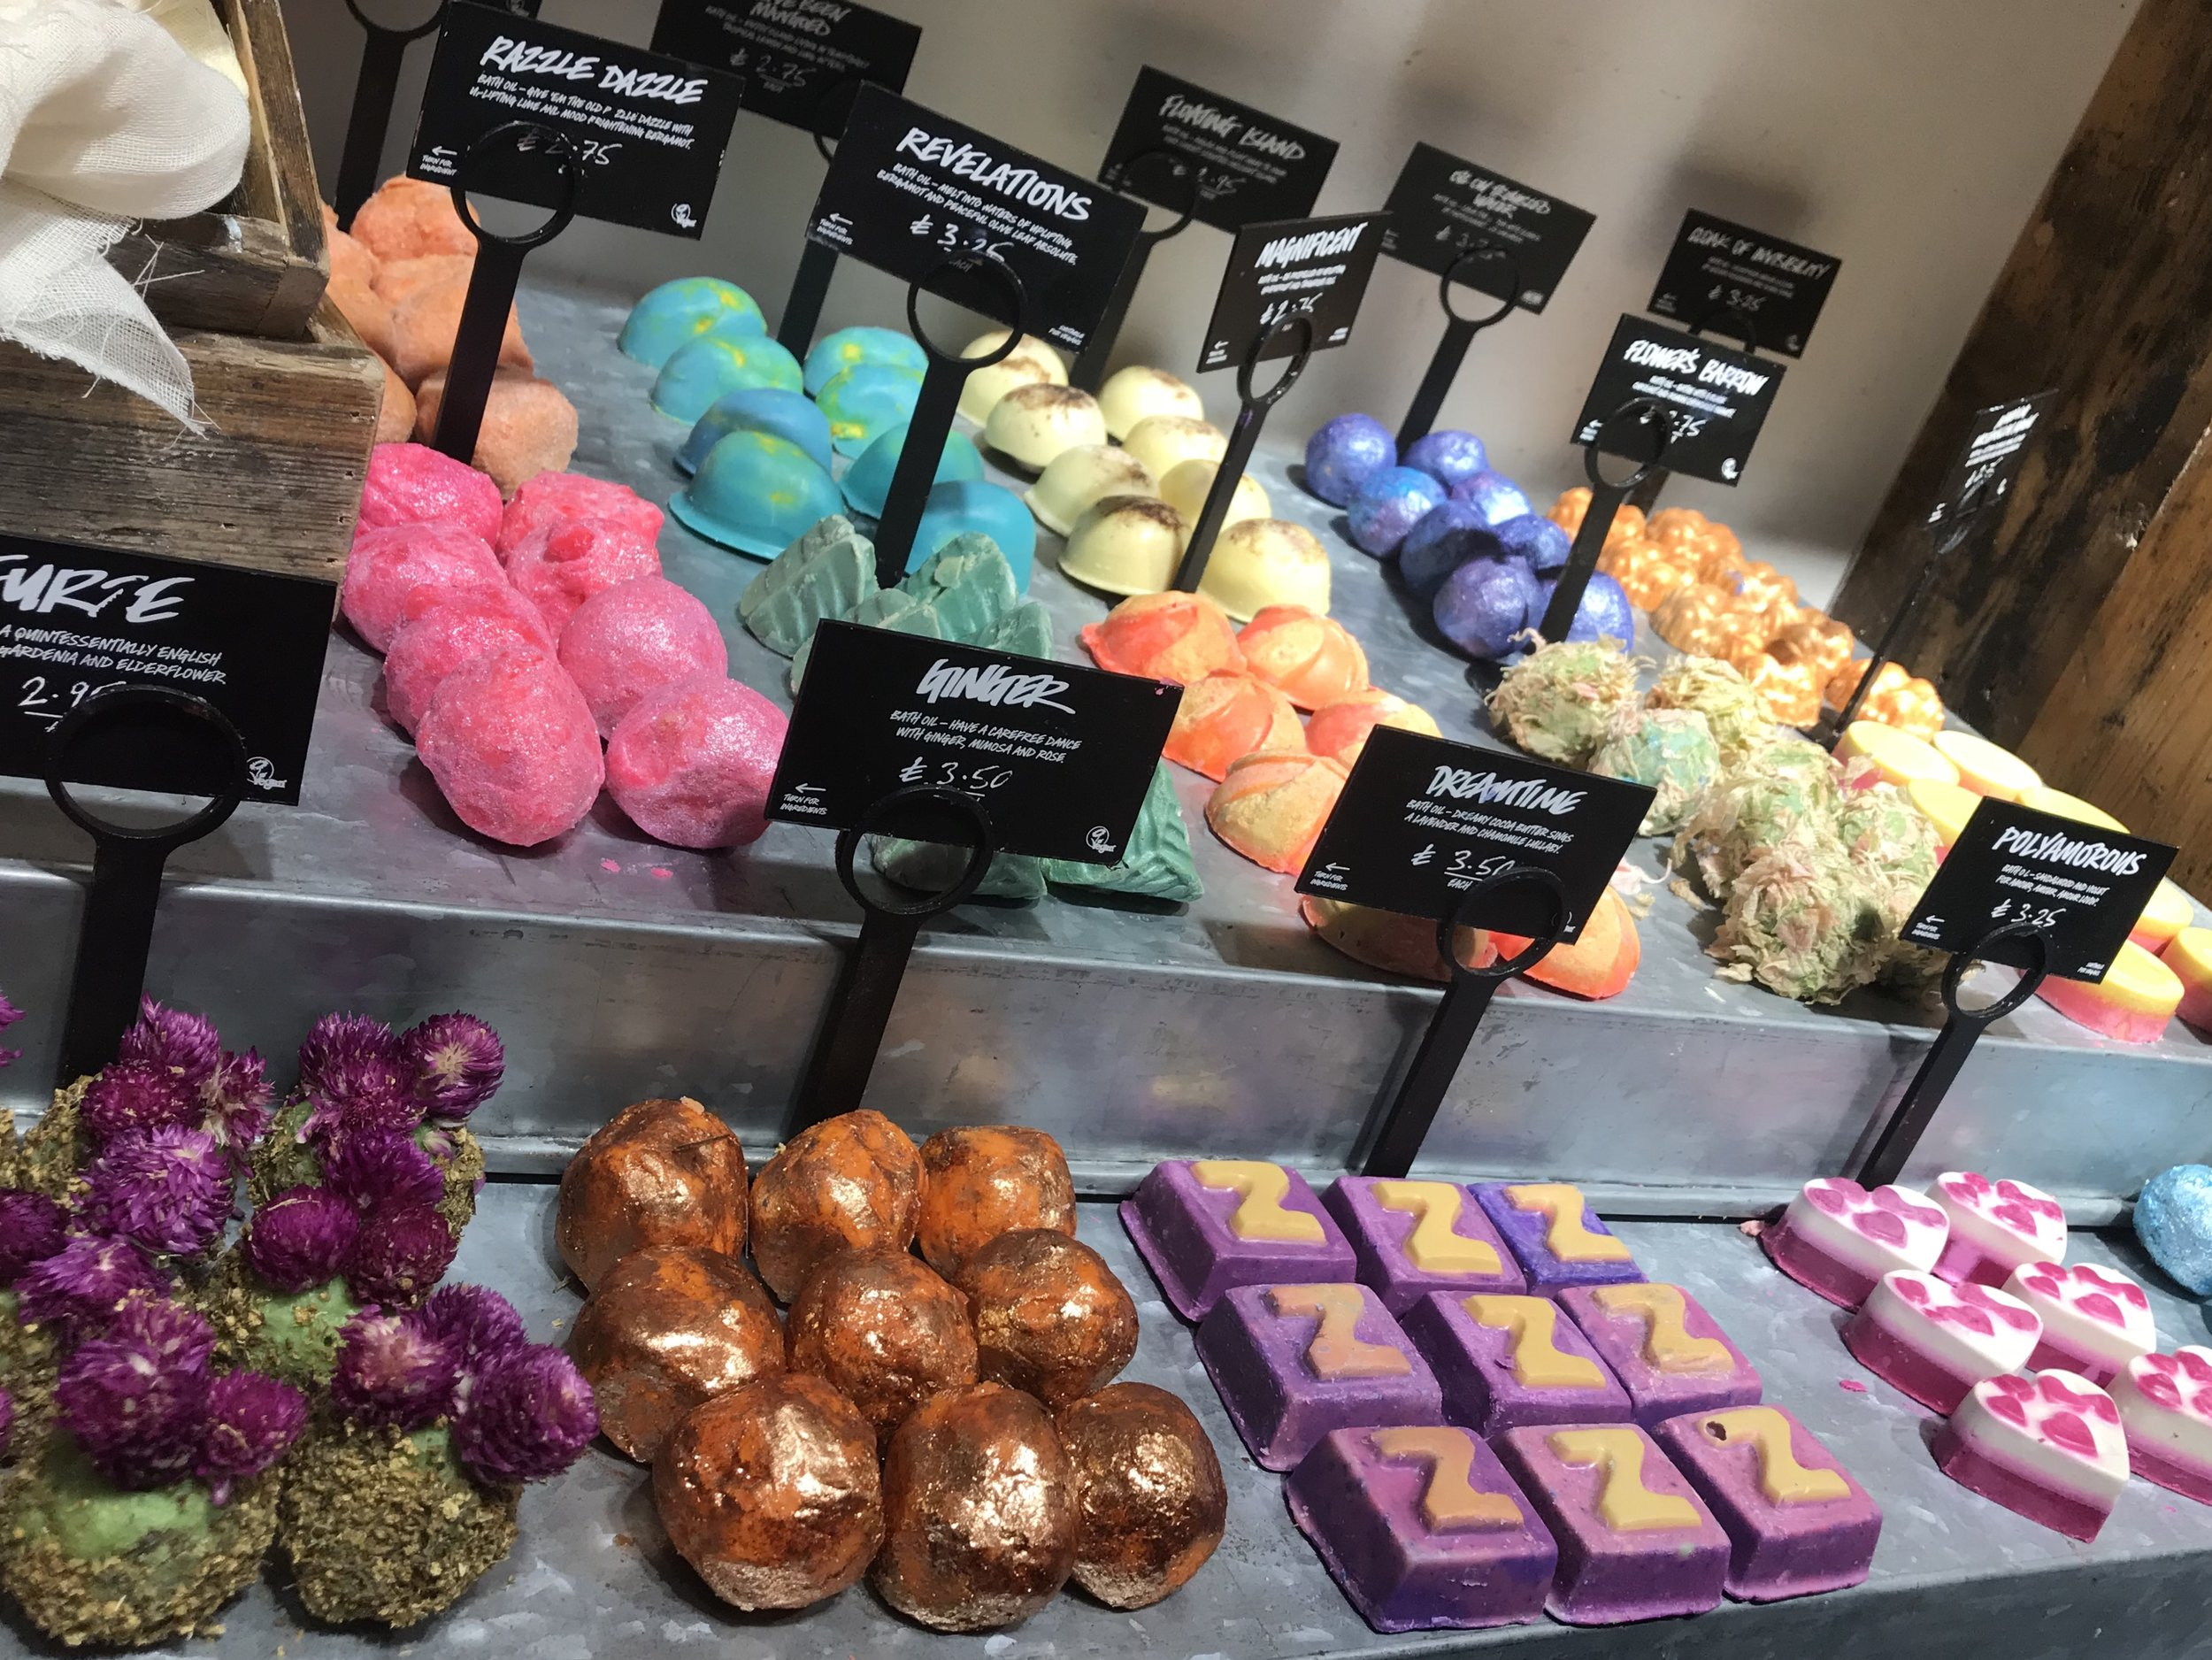 A selection of Lush products including those safe for pregnancy